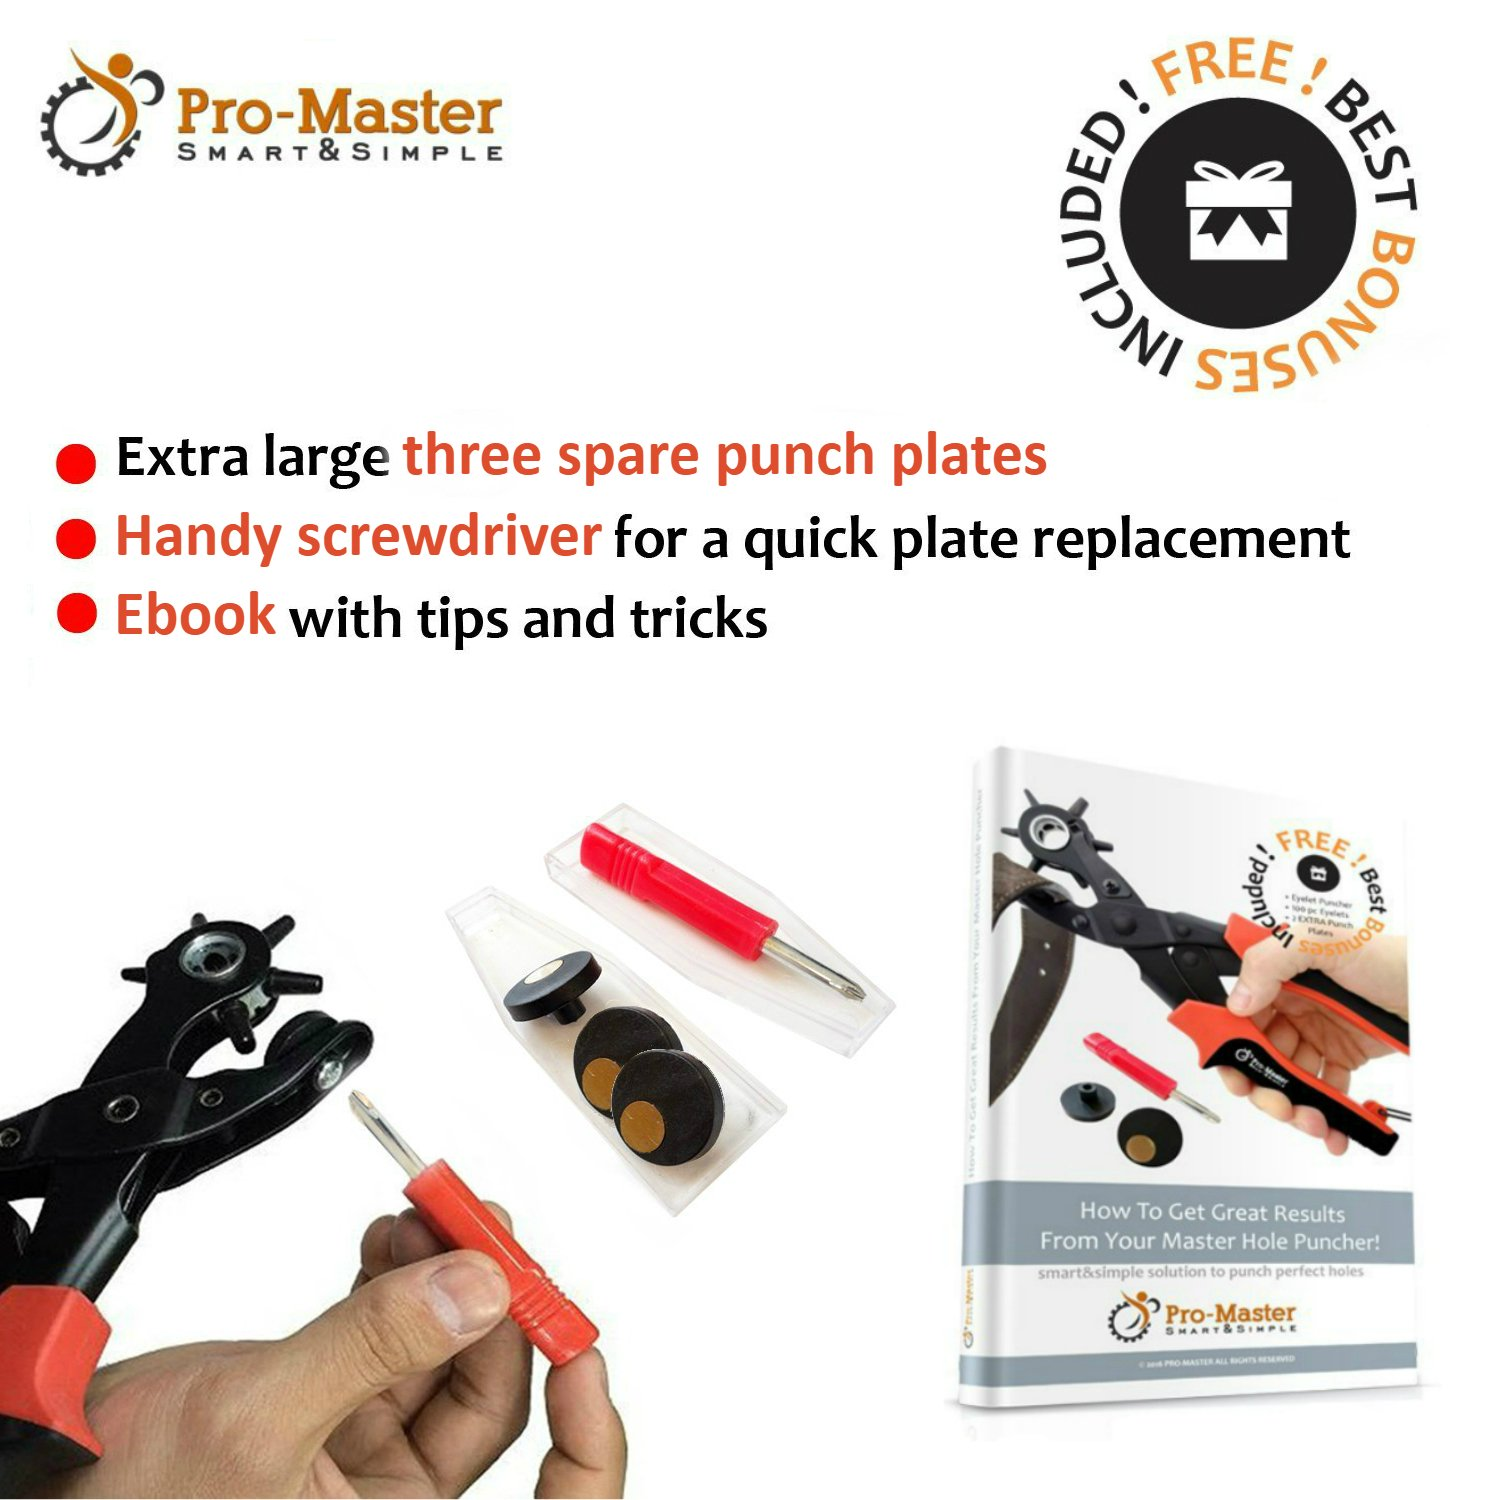 Best Leather Hole Punch Set for Belts, Watch Bands, Straps, Dog Collars, Saddles, Shoes, Fabric, DIY Home or Craft Projects. Super Heavy Duty Rotary Puncher, Multi Hole Sizes Maker Tool, 3 Yr Warranty by ProMaster (Image #6)